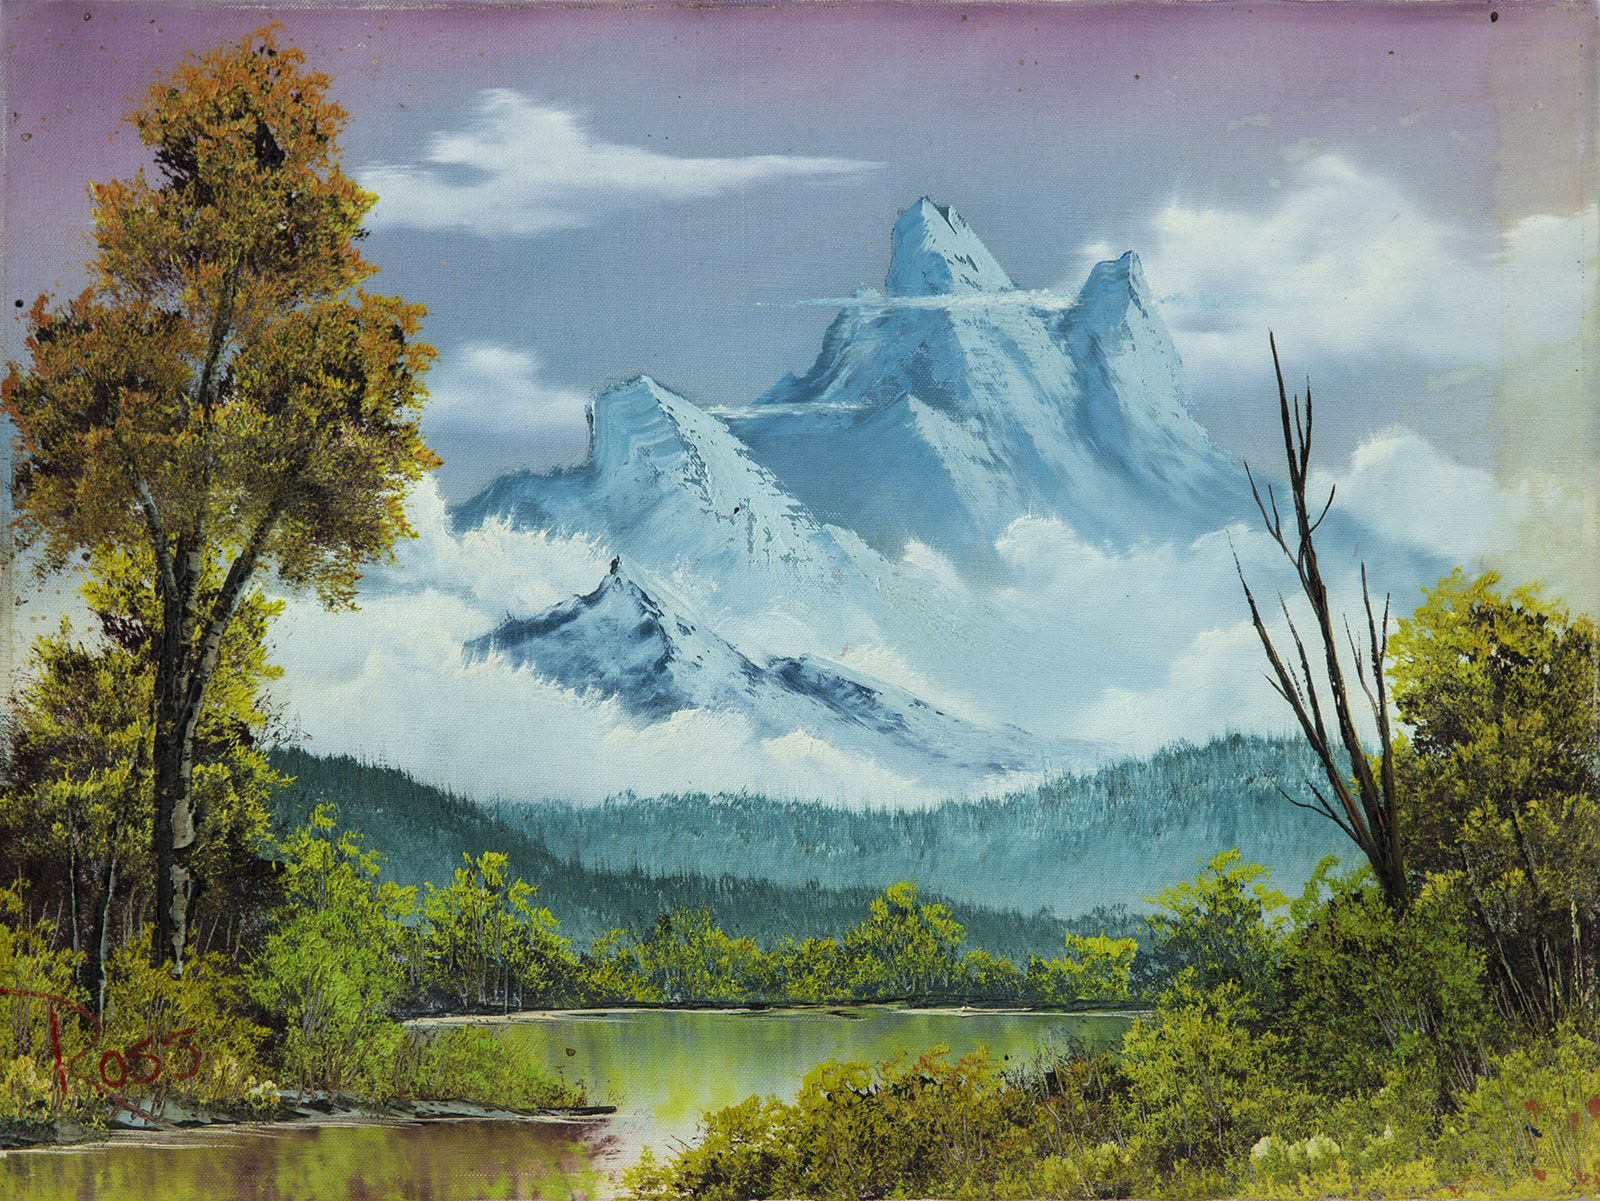 Bob Ross, Towering Peaks, Original Oil Painting, 1980. Image Used with Permission © Mode